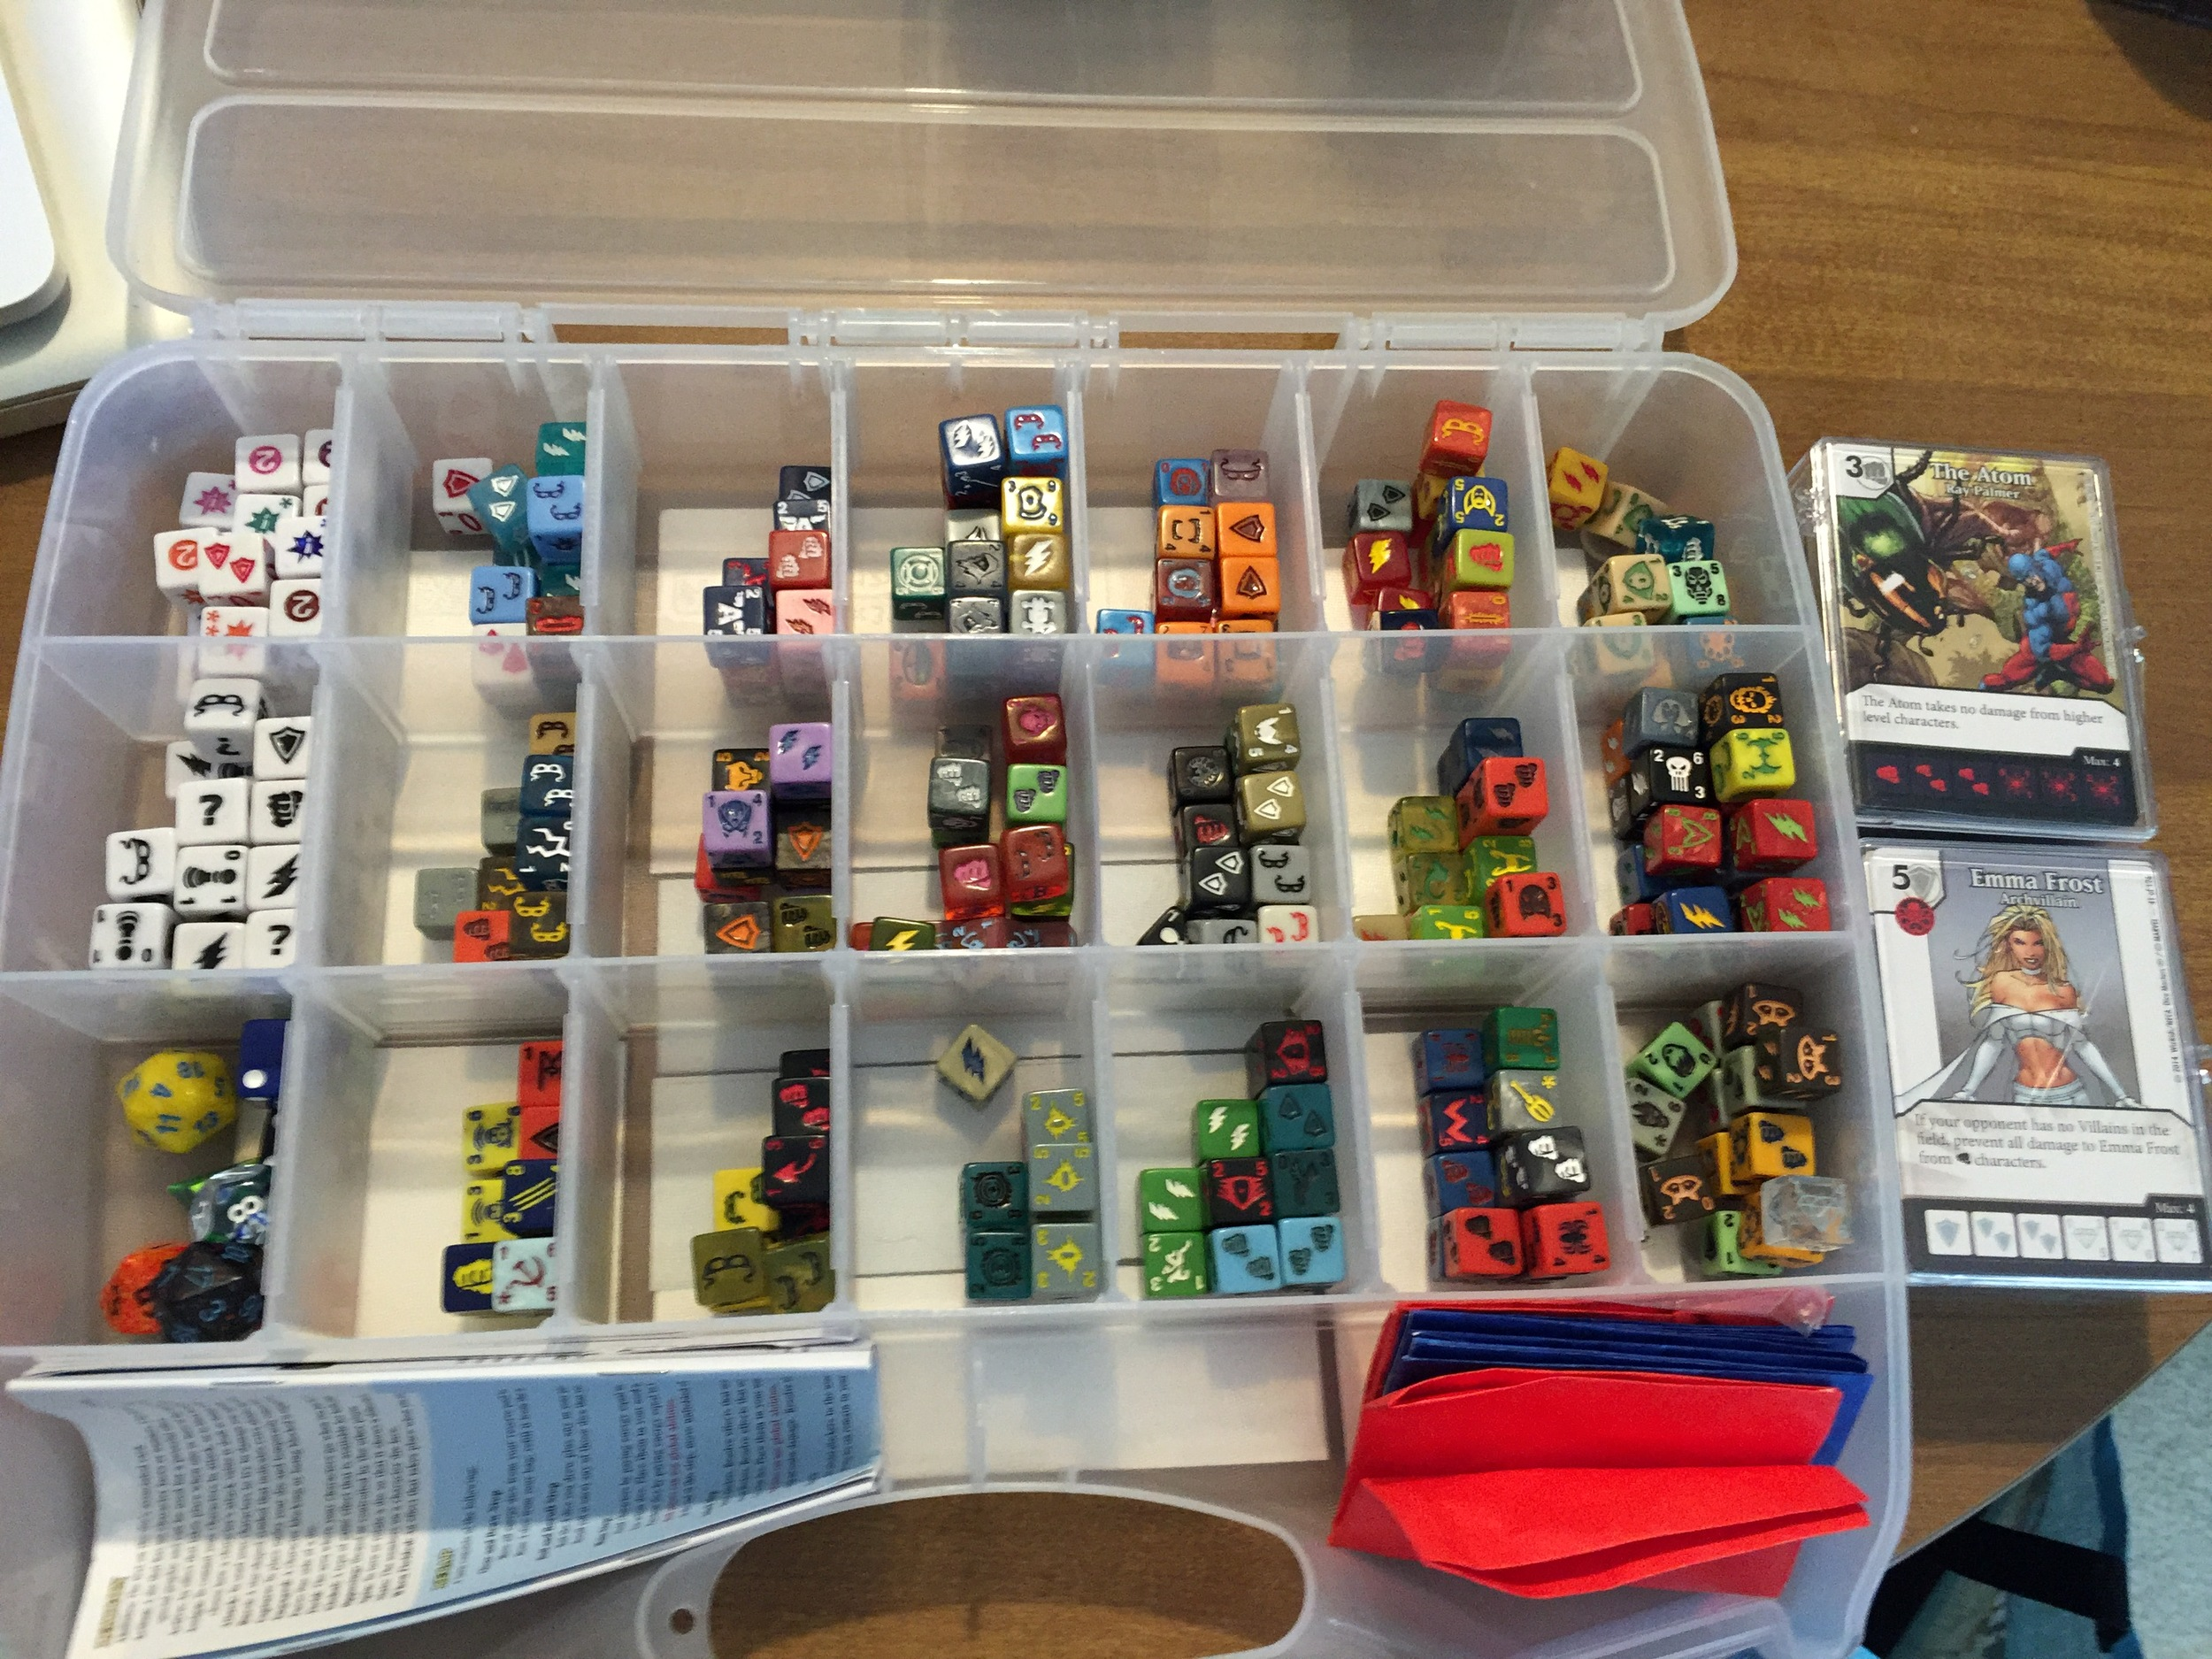 My old craft supplies organizer just mixed up my dice and caused frustration.